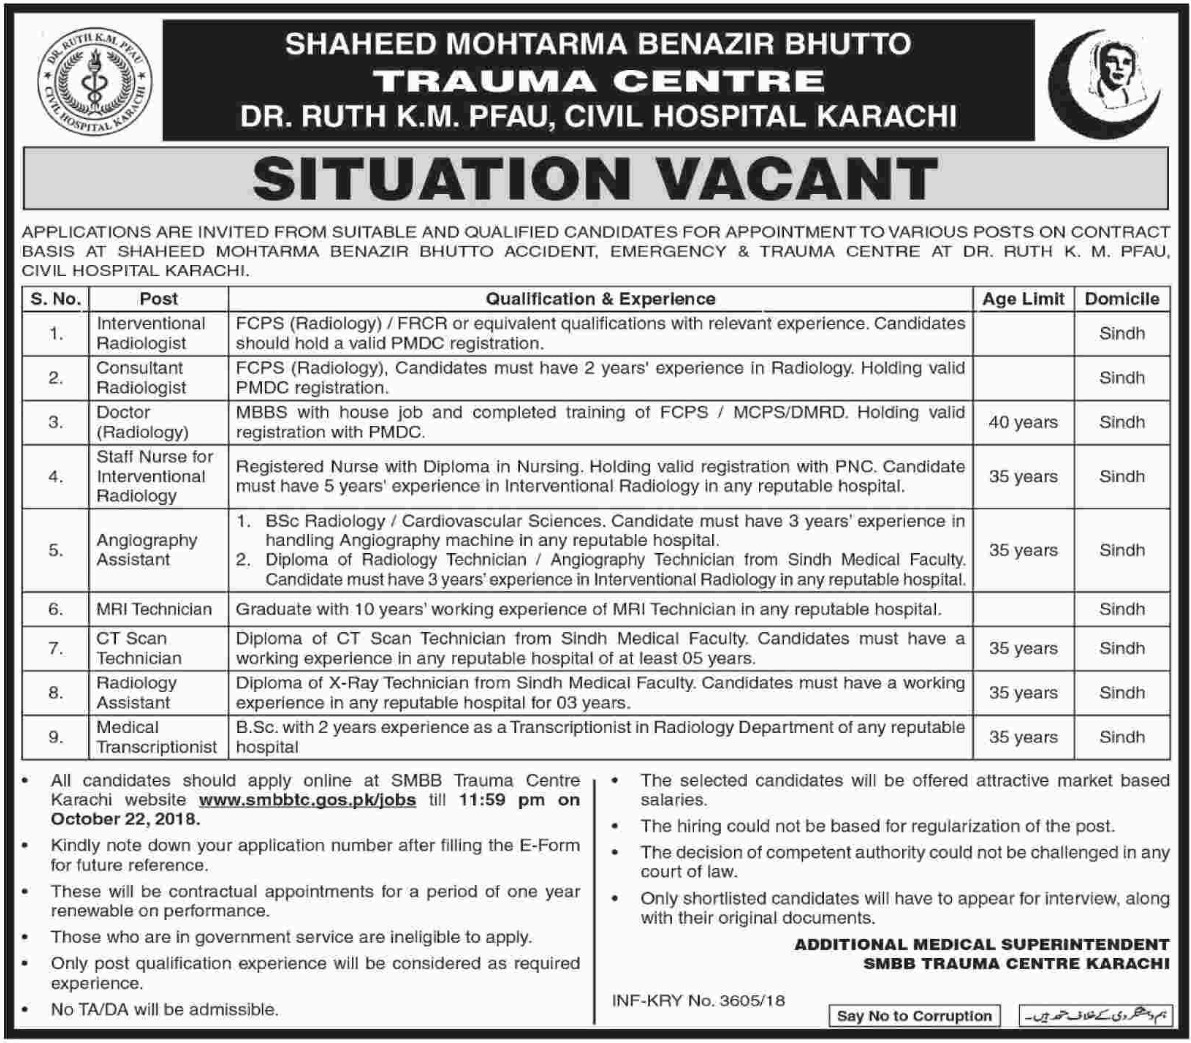 Civil Hospital Karachi SMBB Trauma Centre Jobs 2018